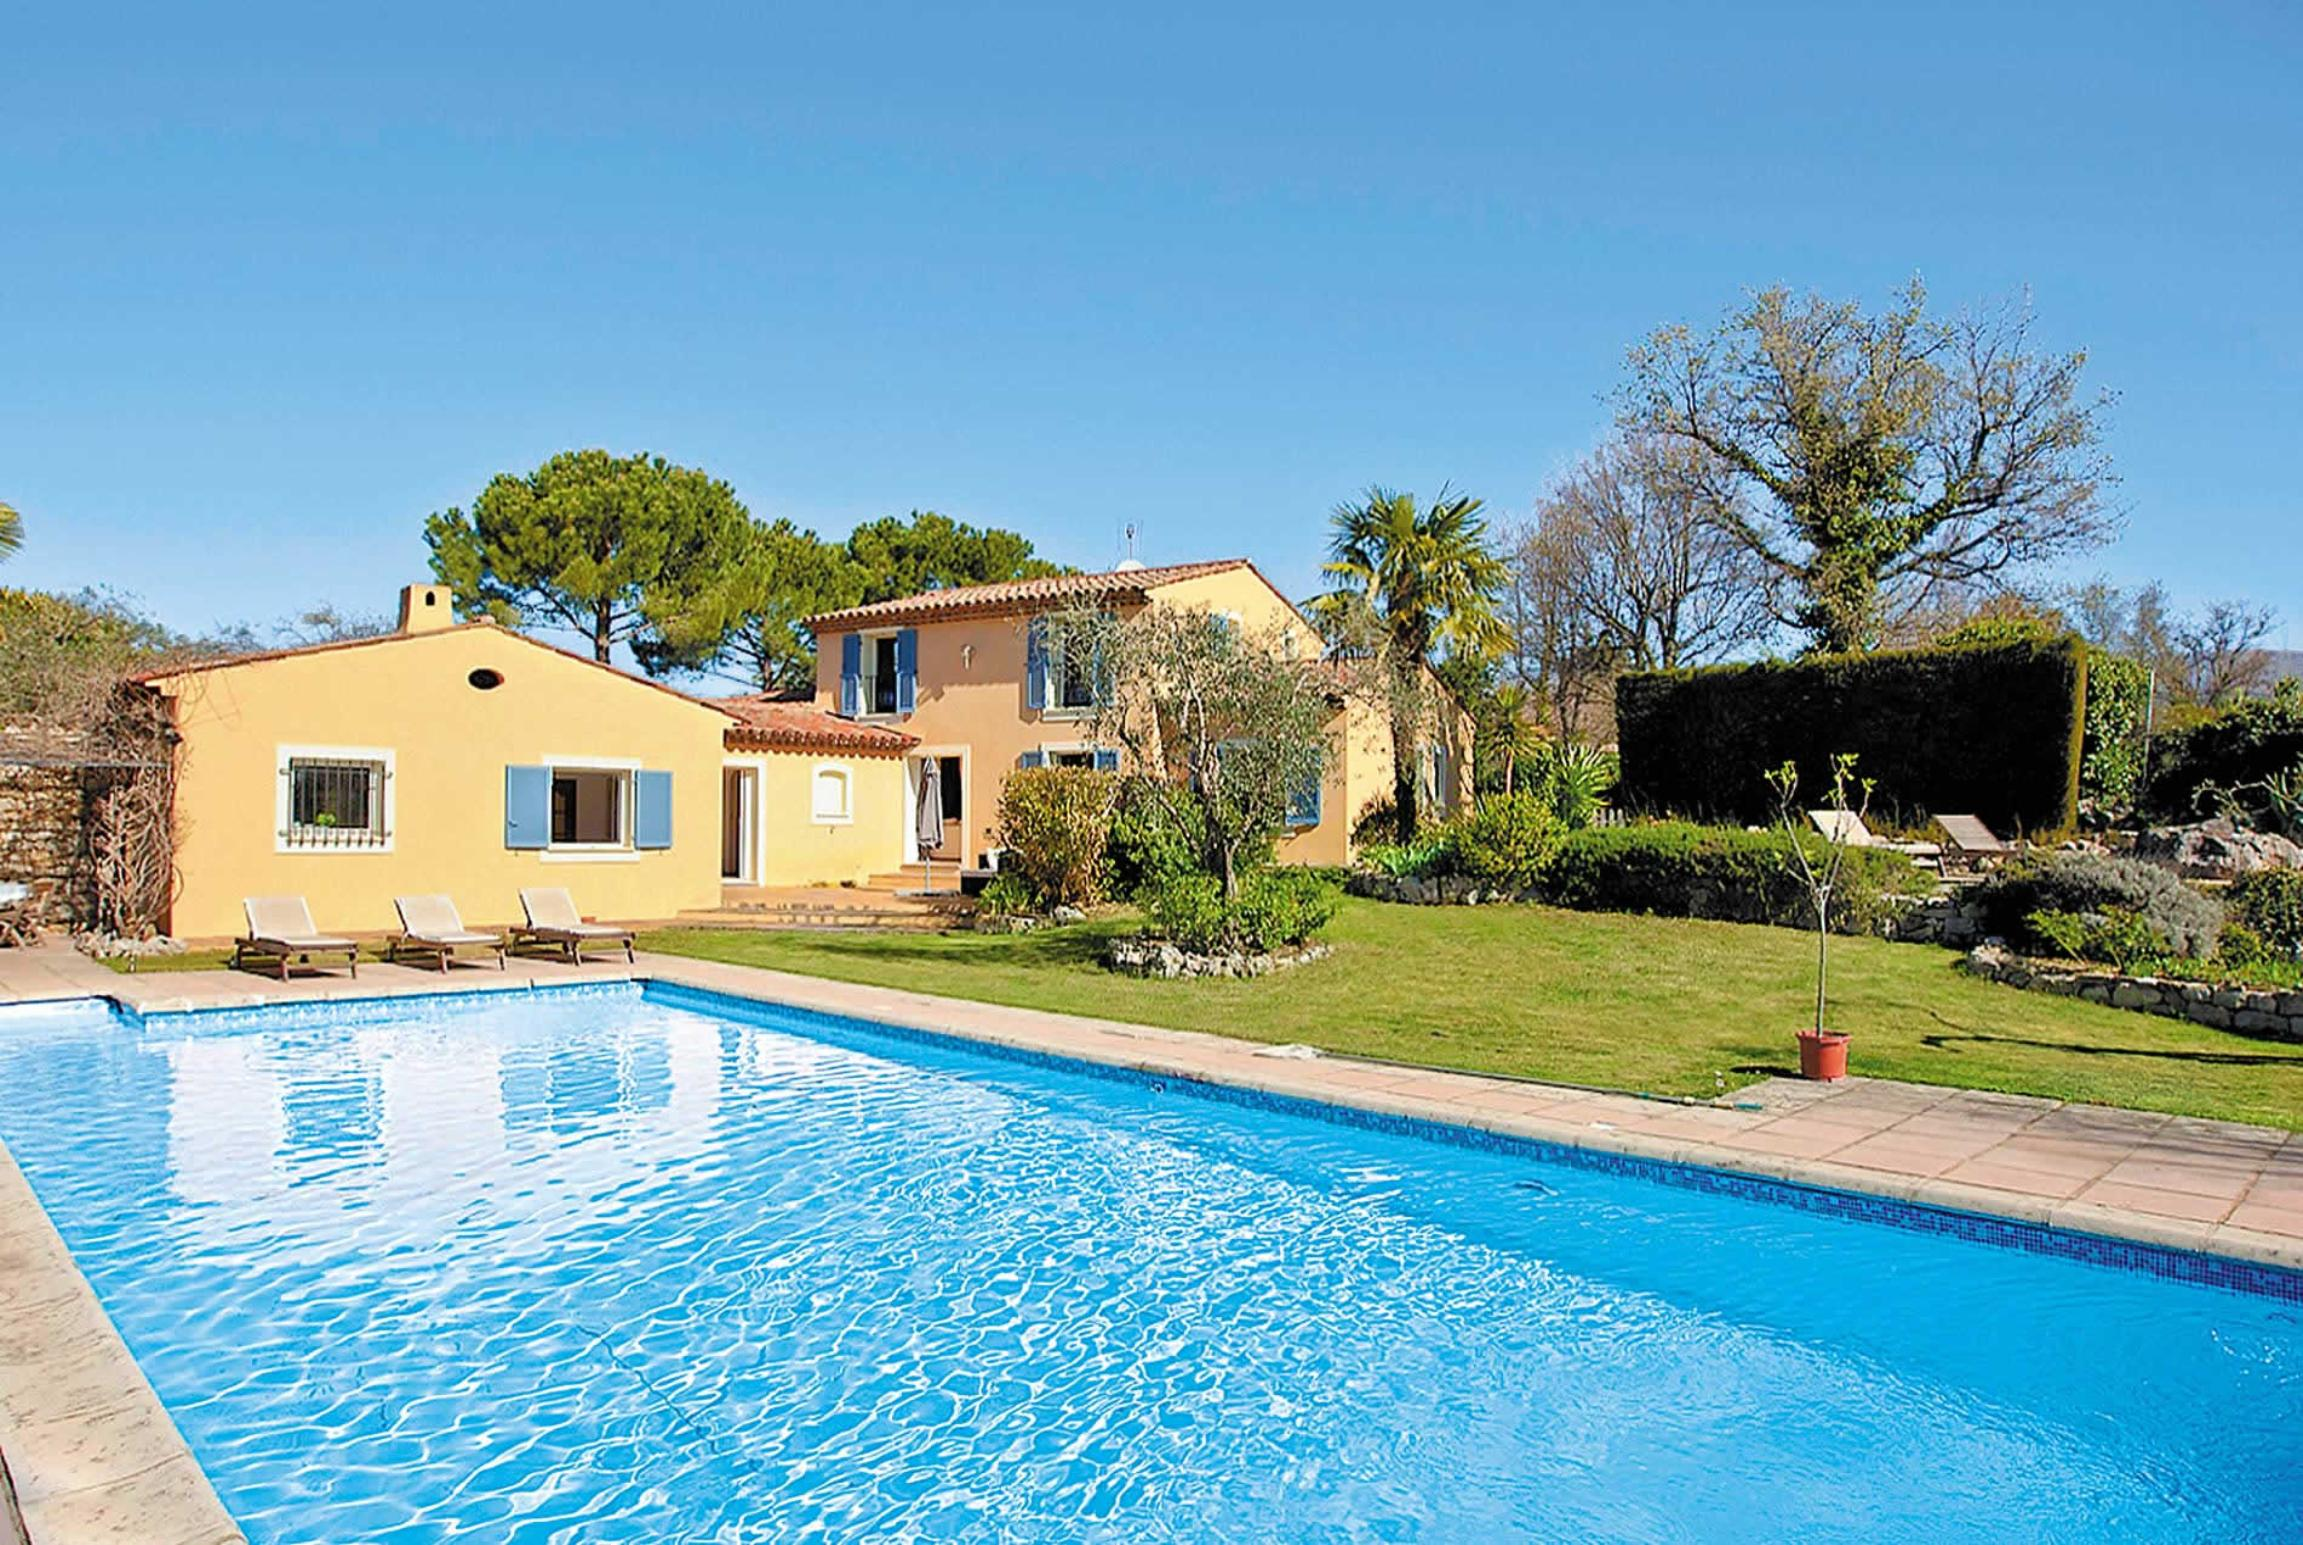 Read more about Maison de Reves villa